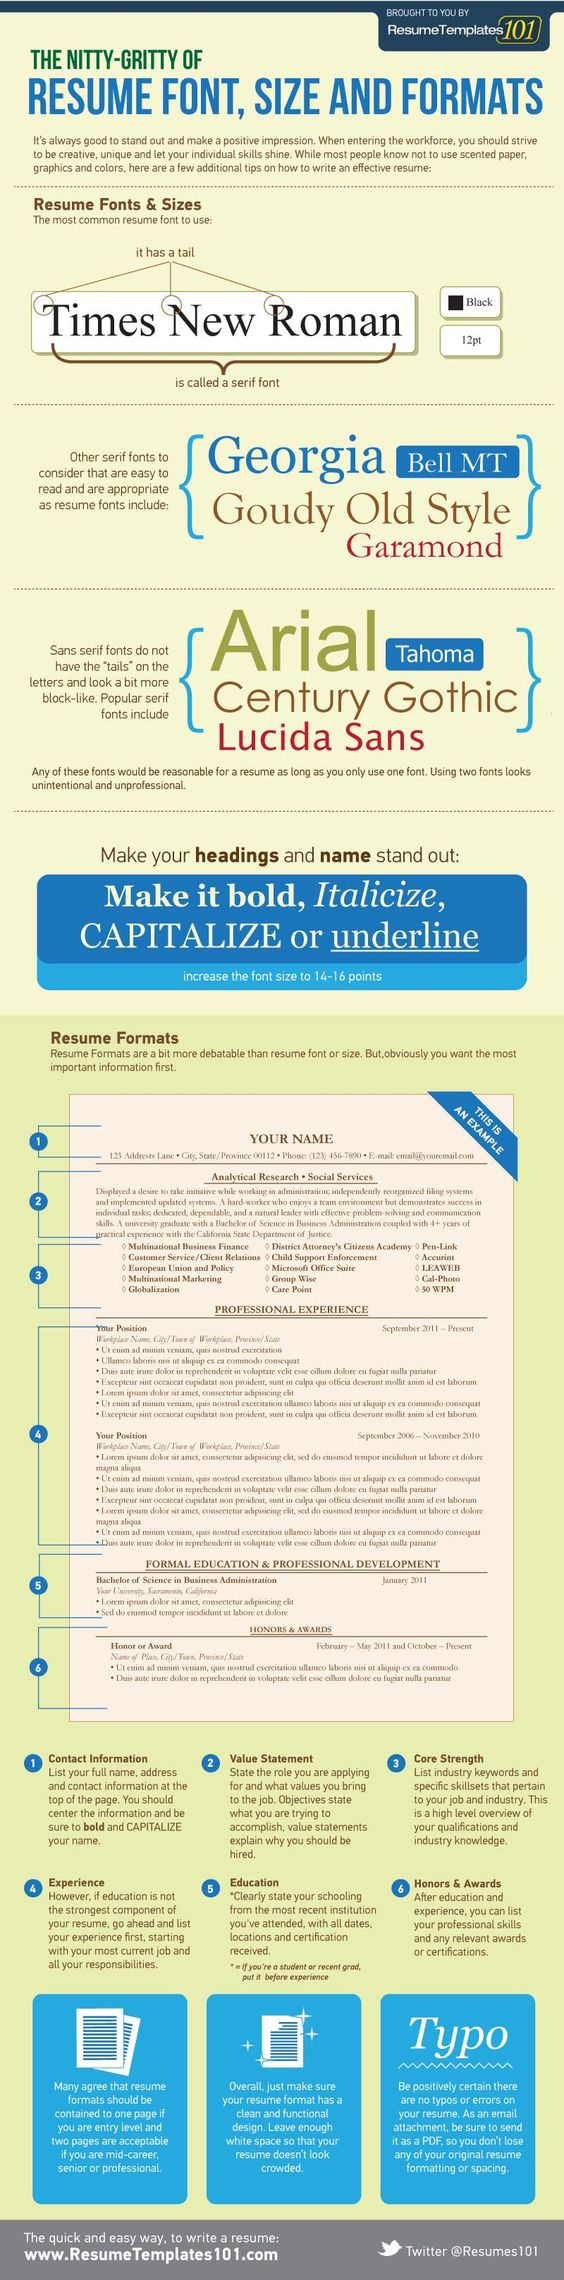 246 Best Career Focus: Resume , Cover Letters And Curriculum Vitae Writing  Tips And Trends Images On Pinterest | Bows, Business Photos And Business  Style